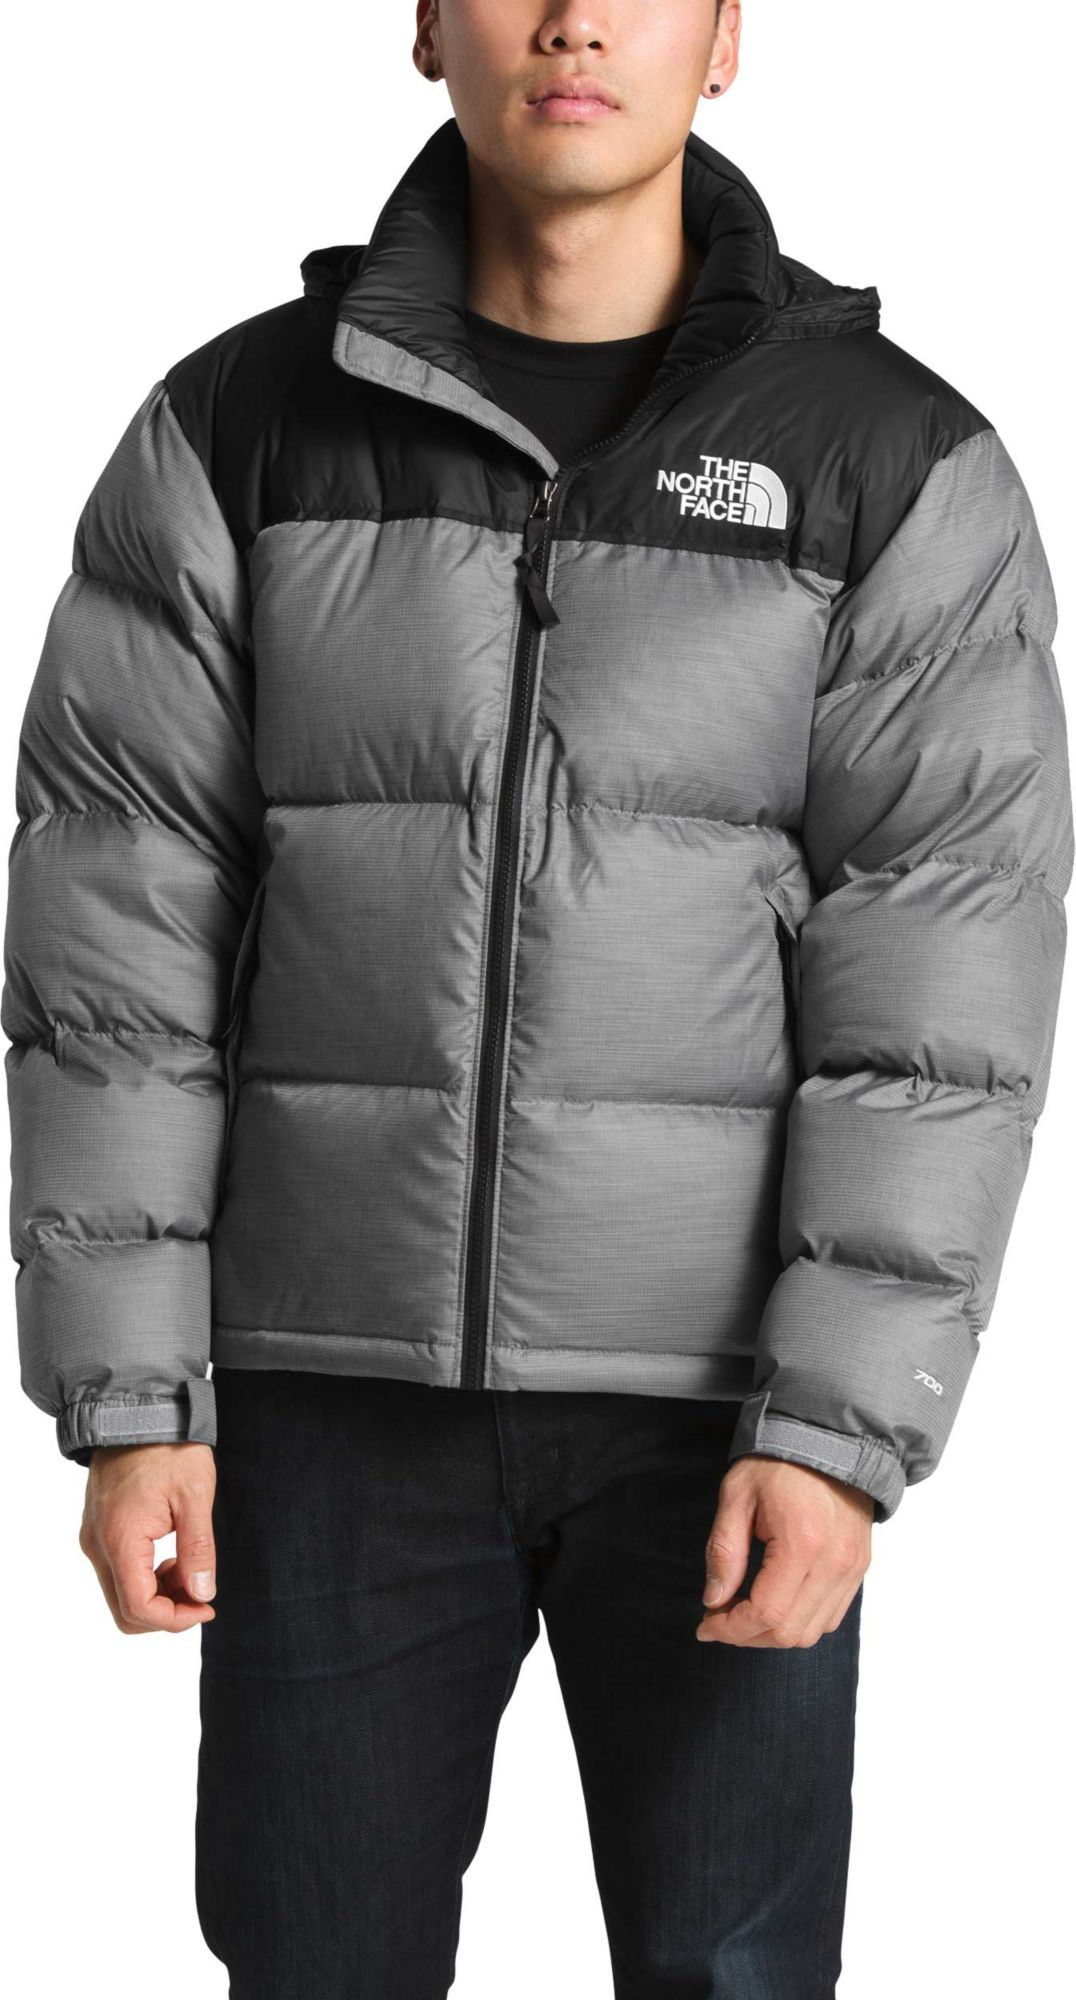 c7d8662d2 The North Face Men's 1996 Retro Nuptse Jacket in 2019 | Products ...